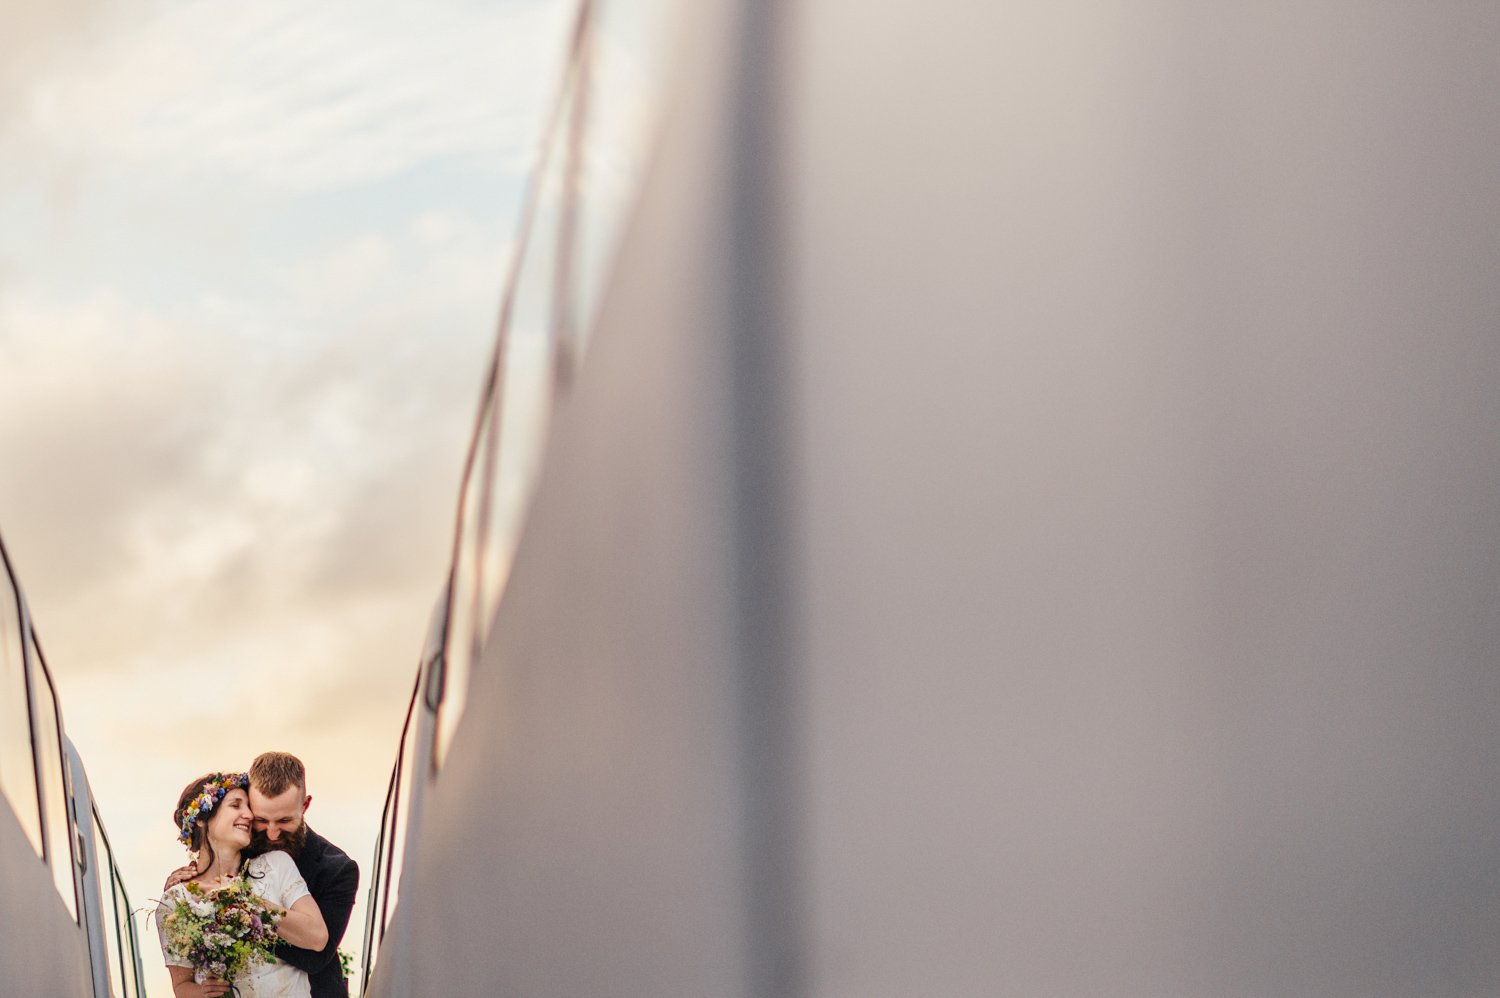 Romantic wedding photographer BABB